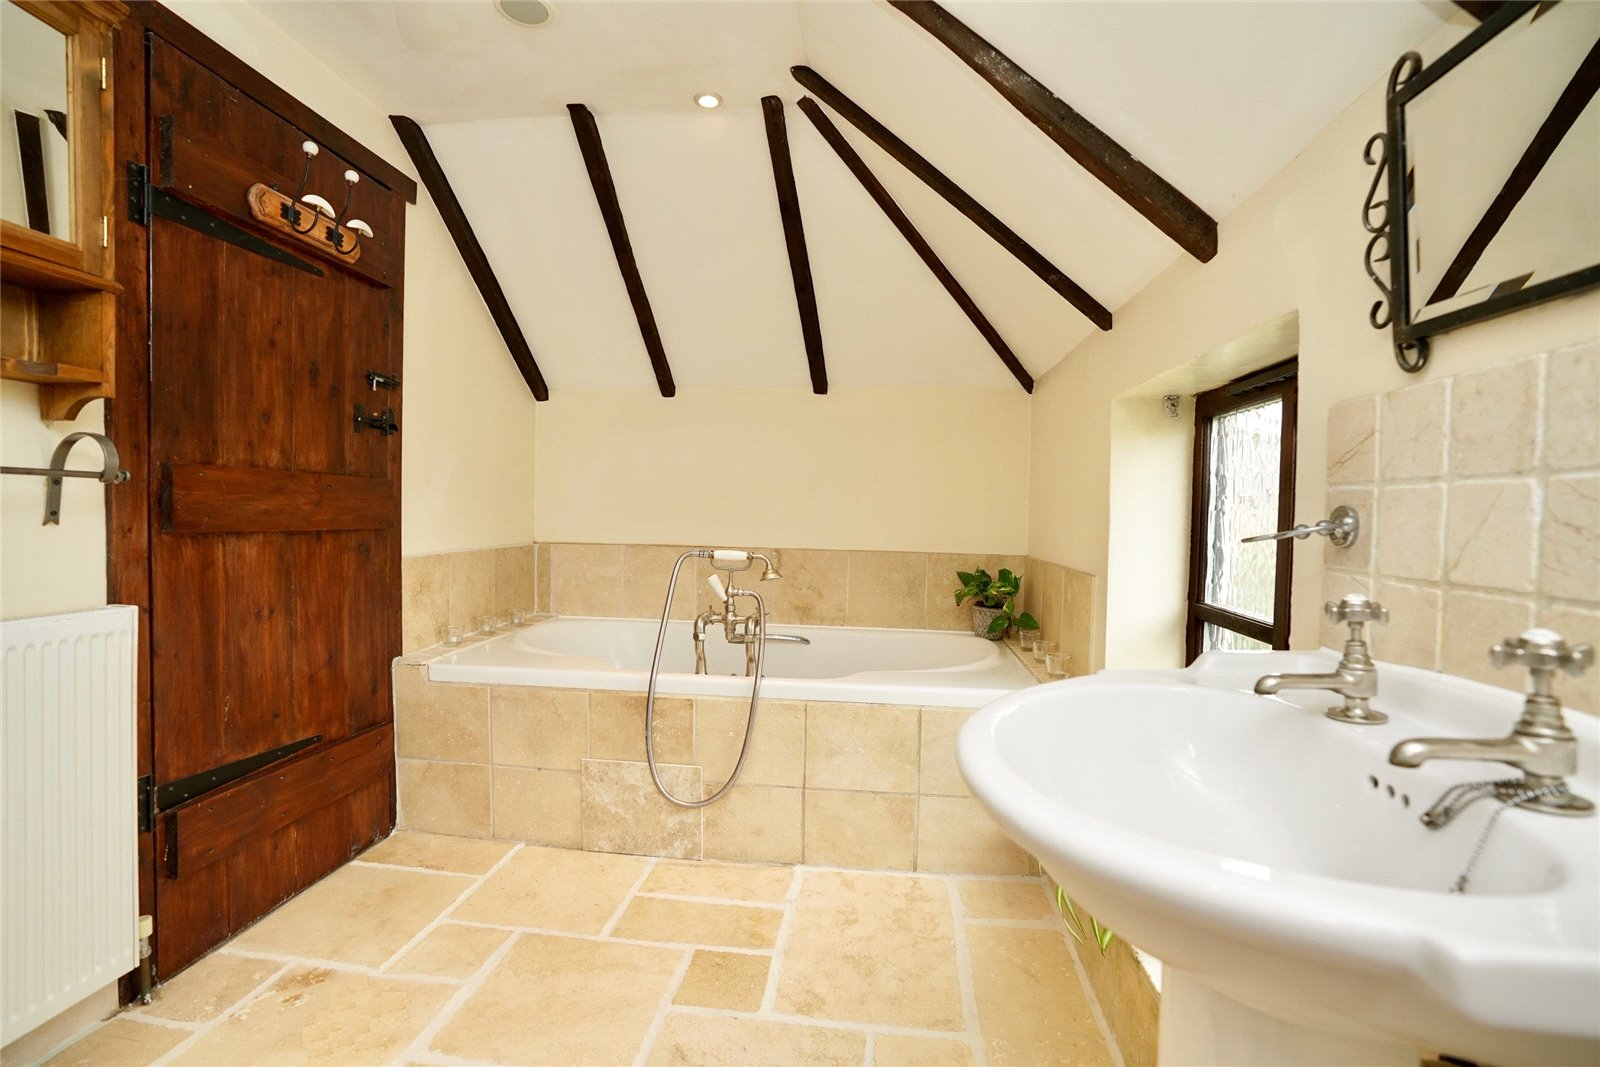 5 bed house for sale in Colmworth Road, Little Staughton 9